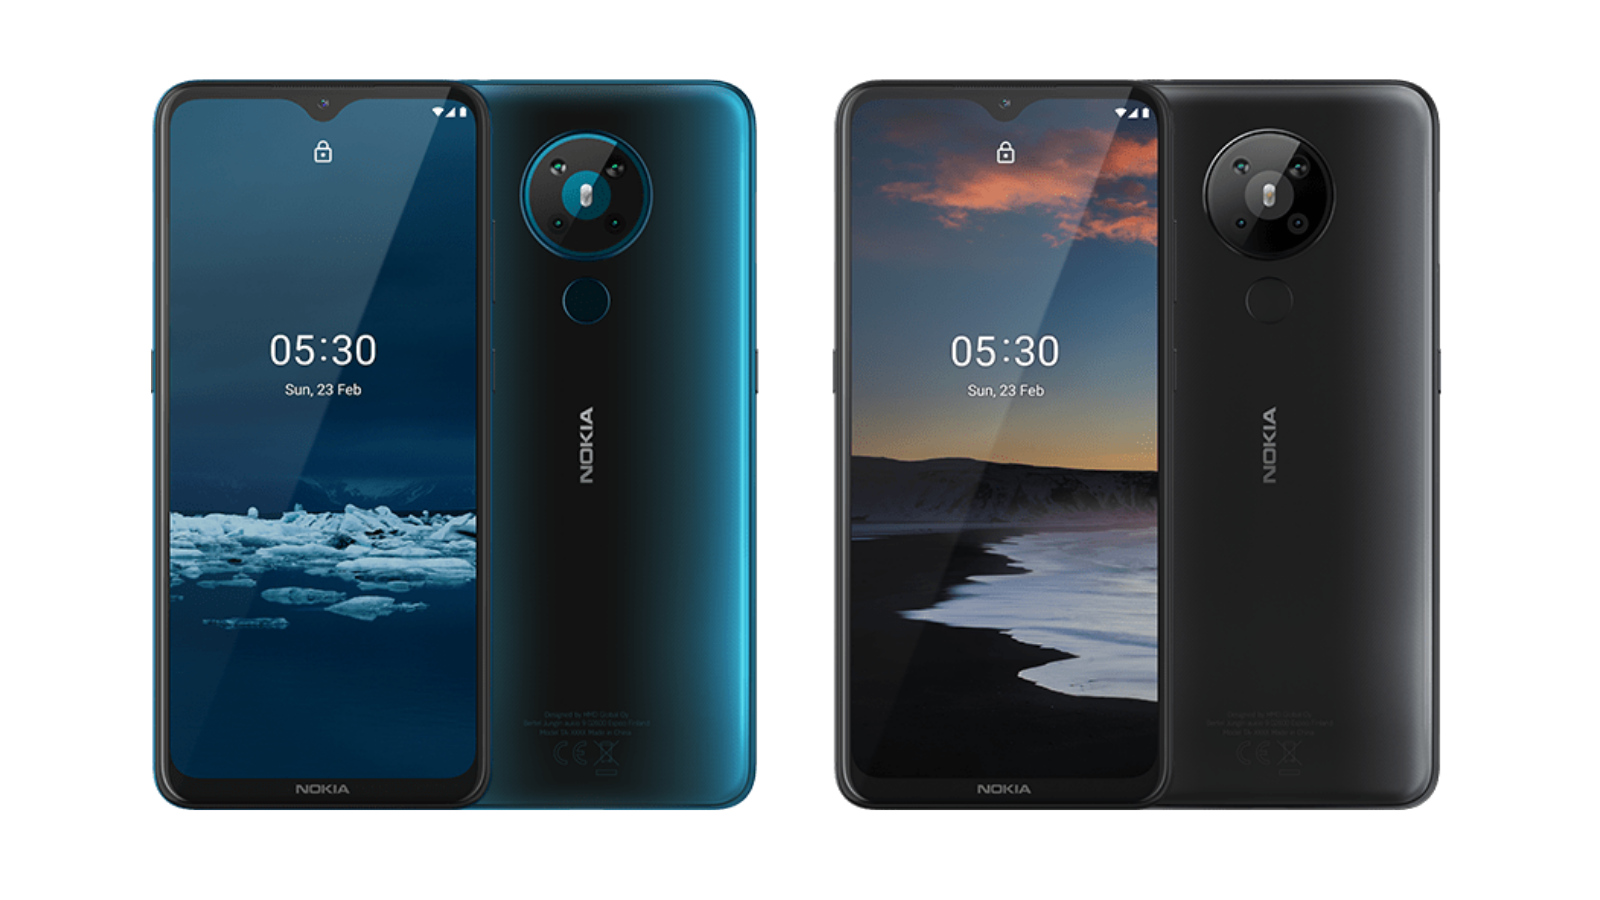 Nokia 5.3 now available in South Africa - price and details - Gearburn - gearburn